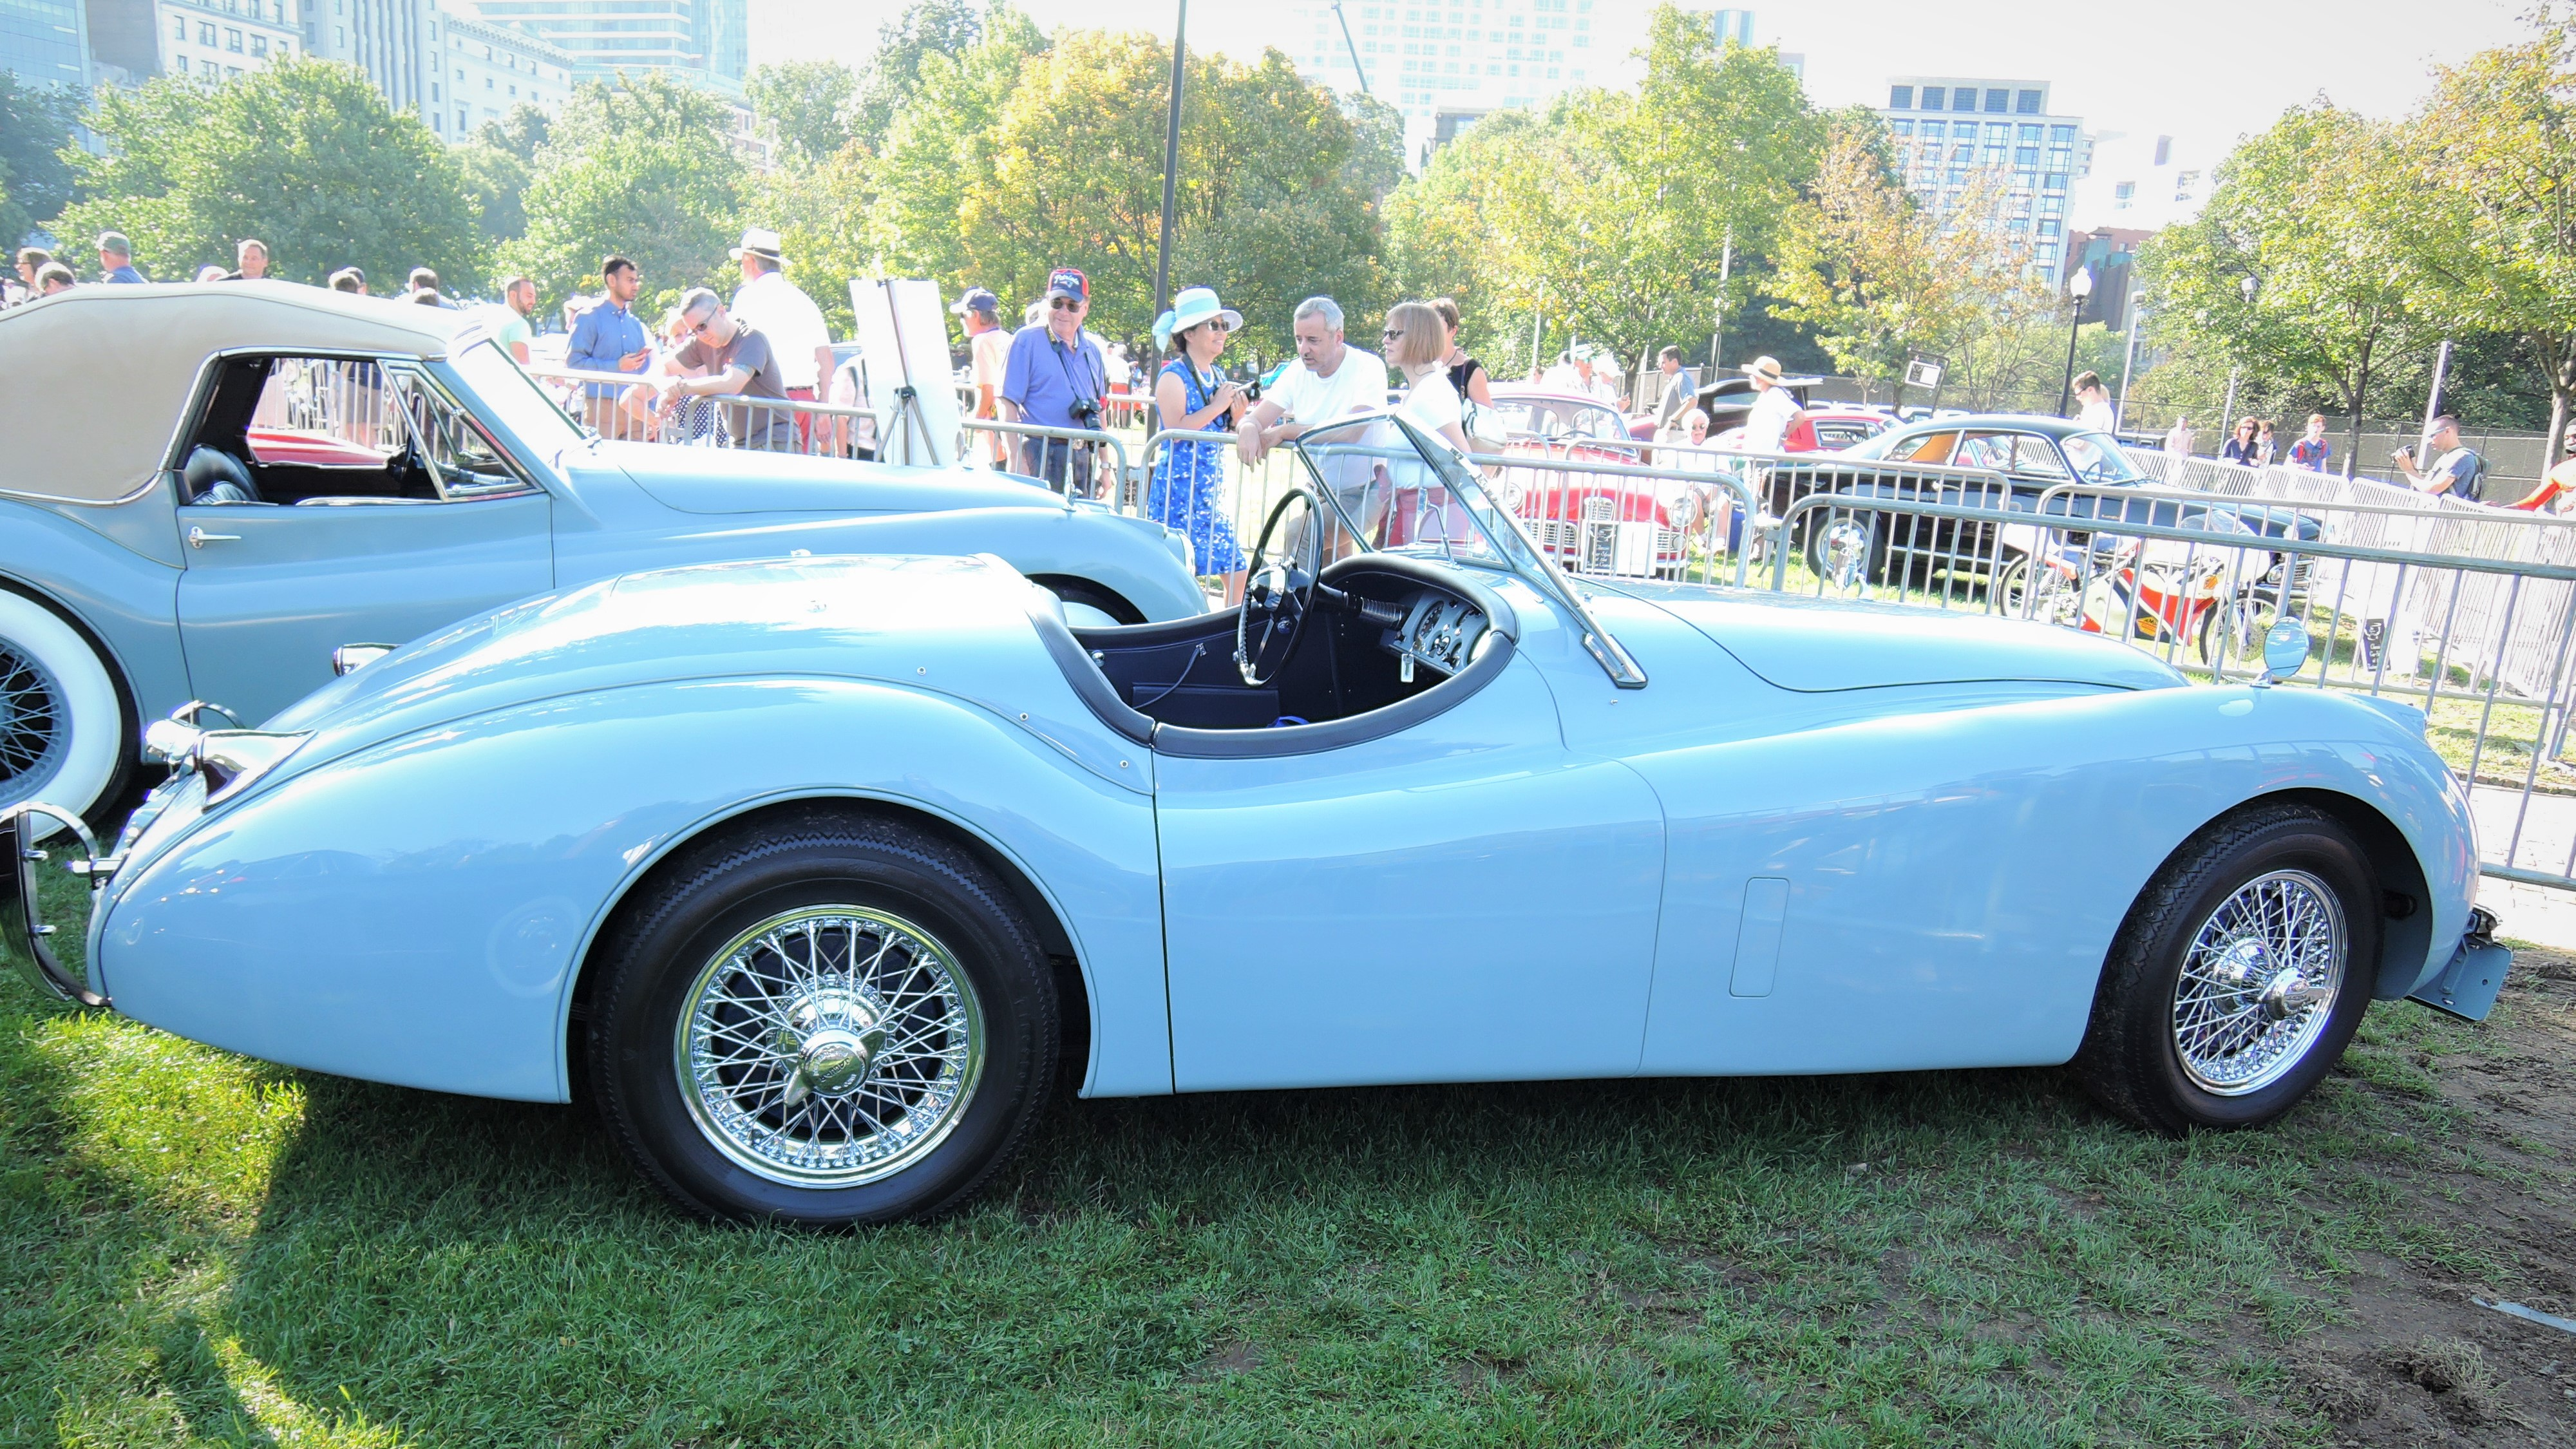 blue Jaguar XK 120 - The Boston Cup 2017